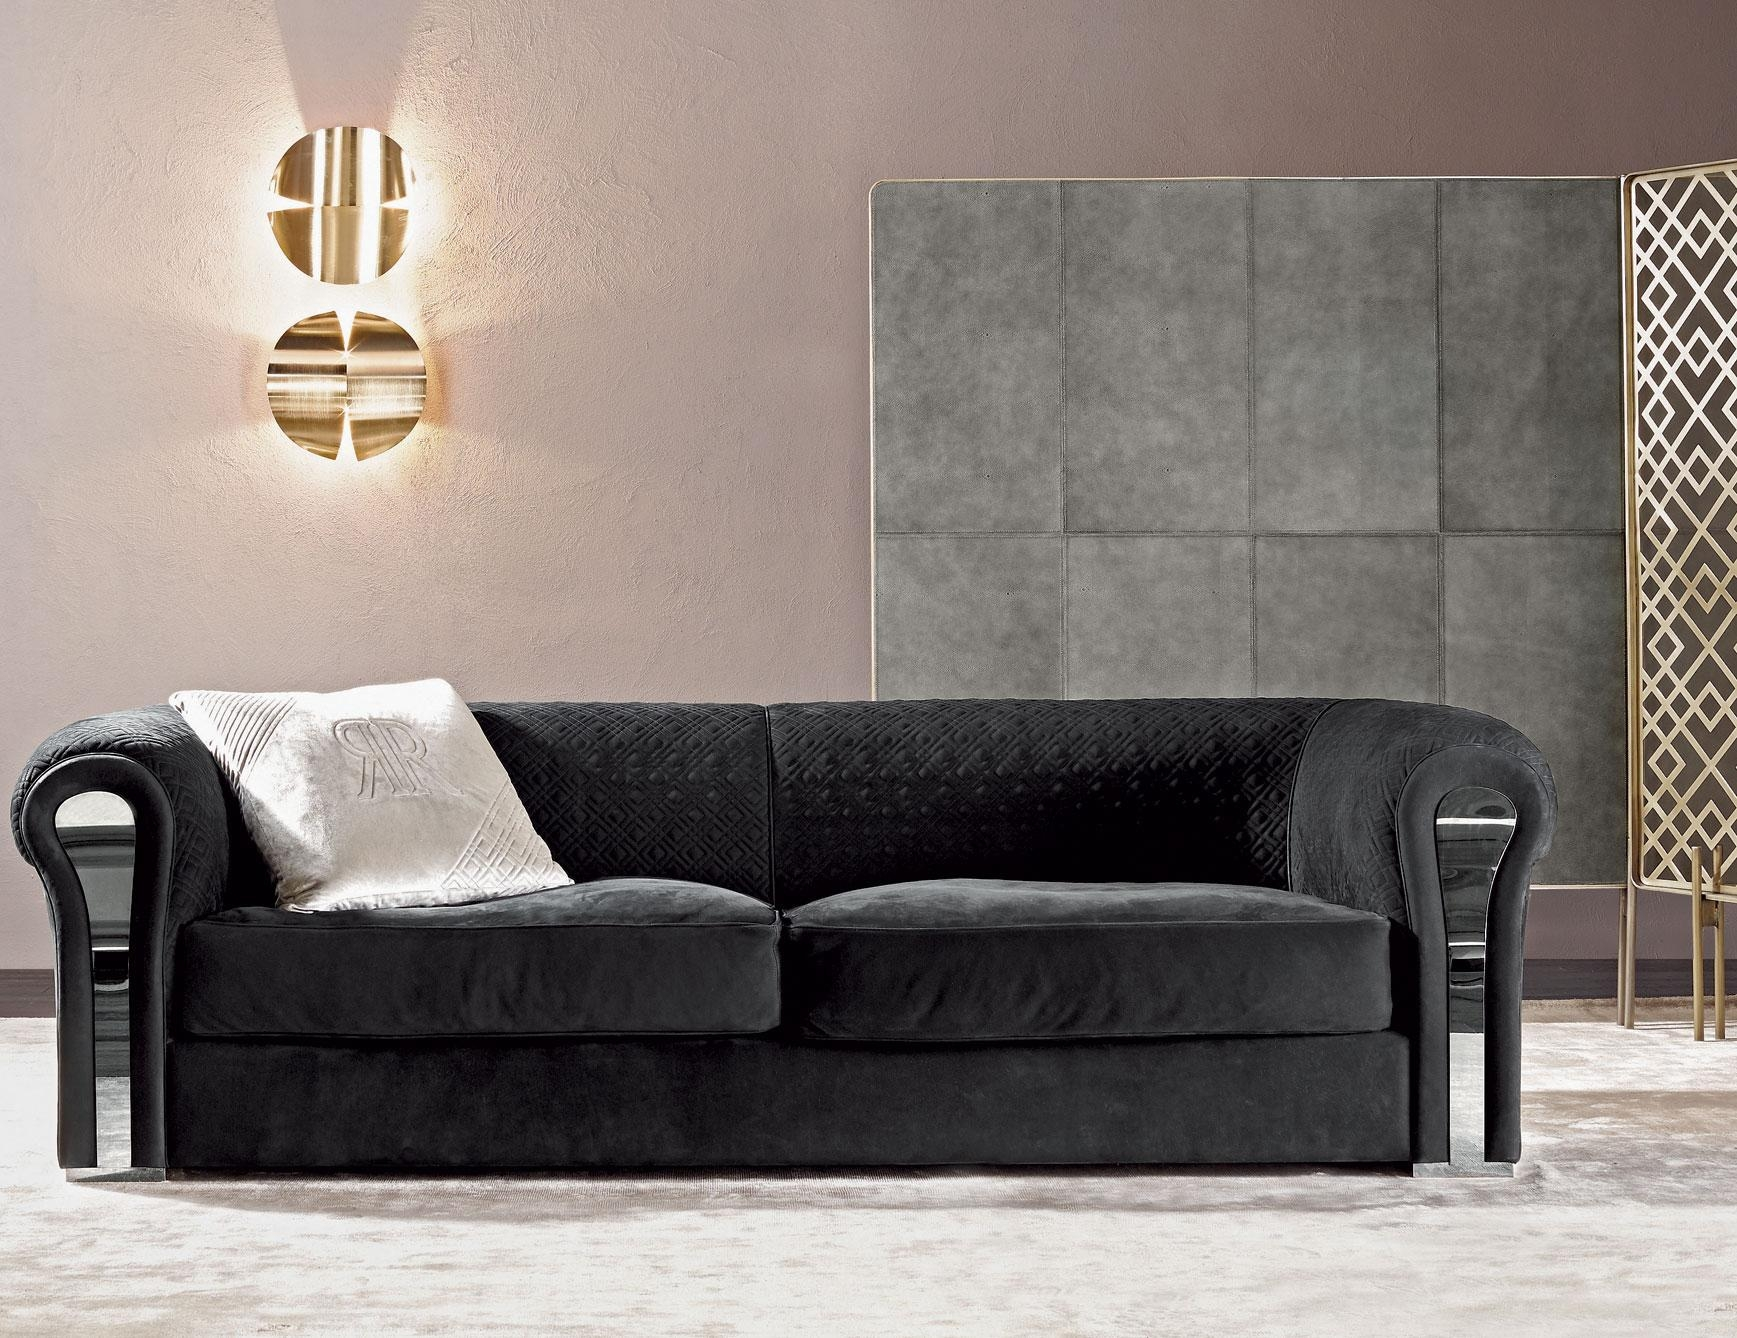 Sofas Center : High End Sofasnd Sectional Coucheshigh Onlinehigh Intended For High End Sofa (View 15 of 20)